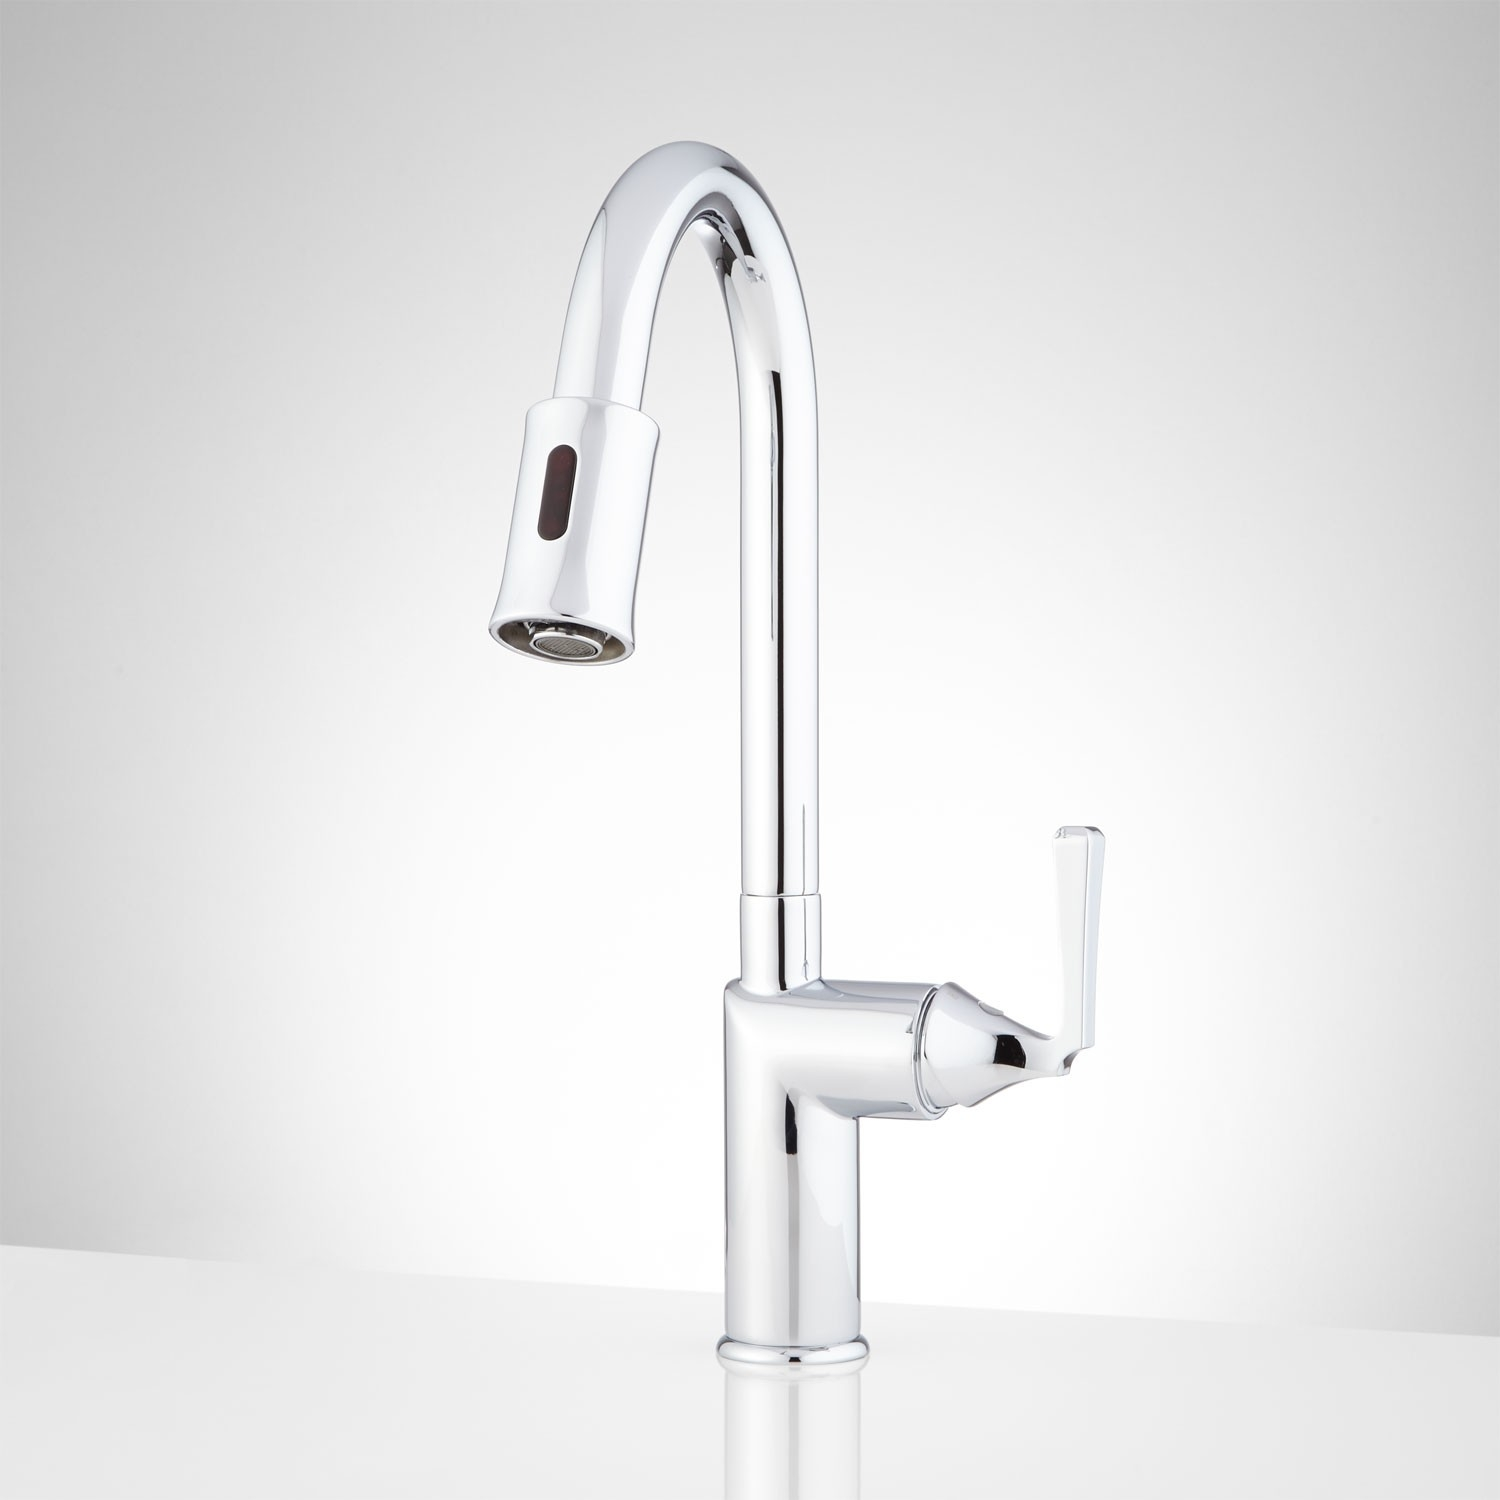 best touch activated kitchen faucet best touch activated kitchen faucet 28 best touch kitchen faucet kitchen faucets quality brands 1500 x 1500